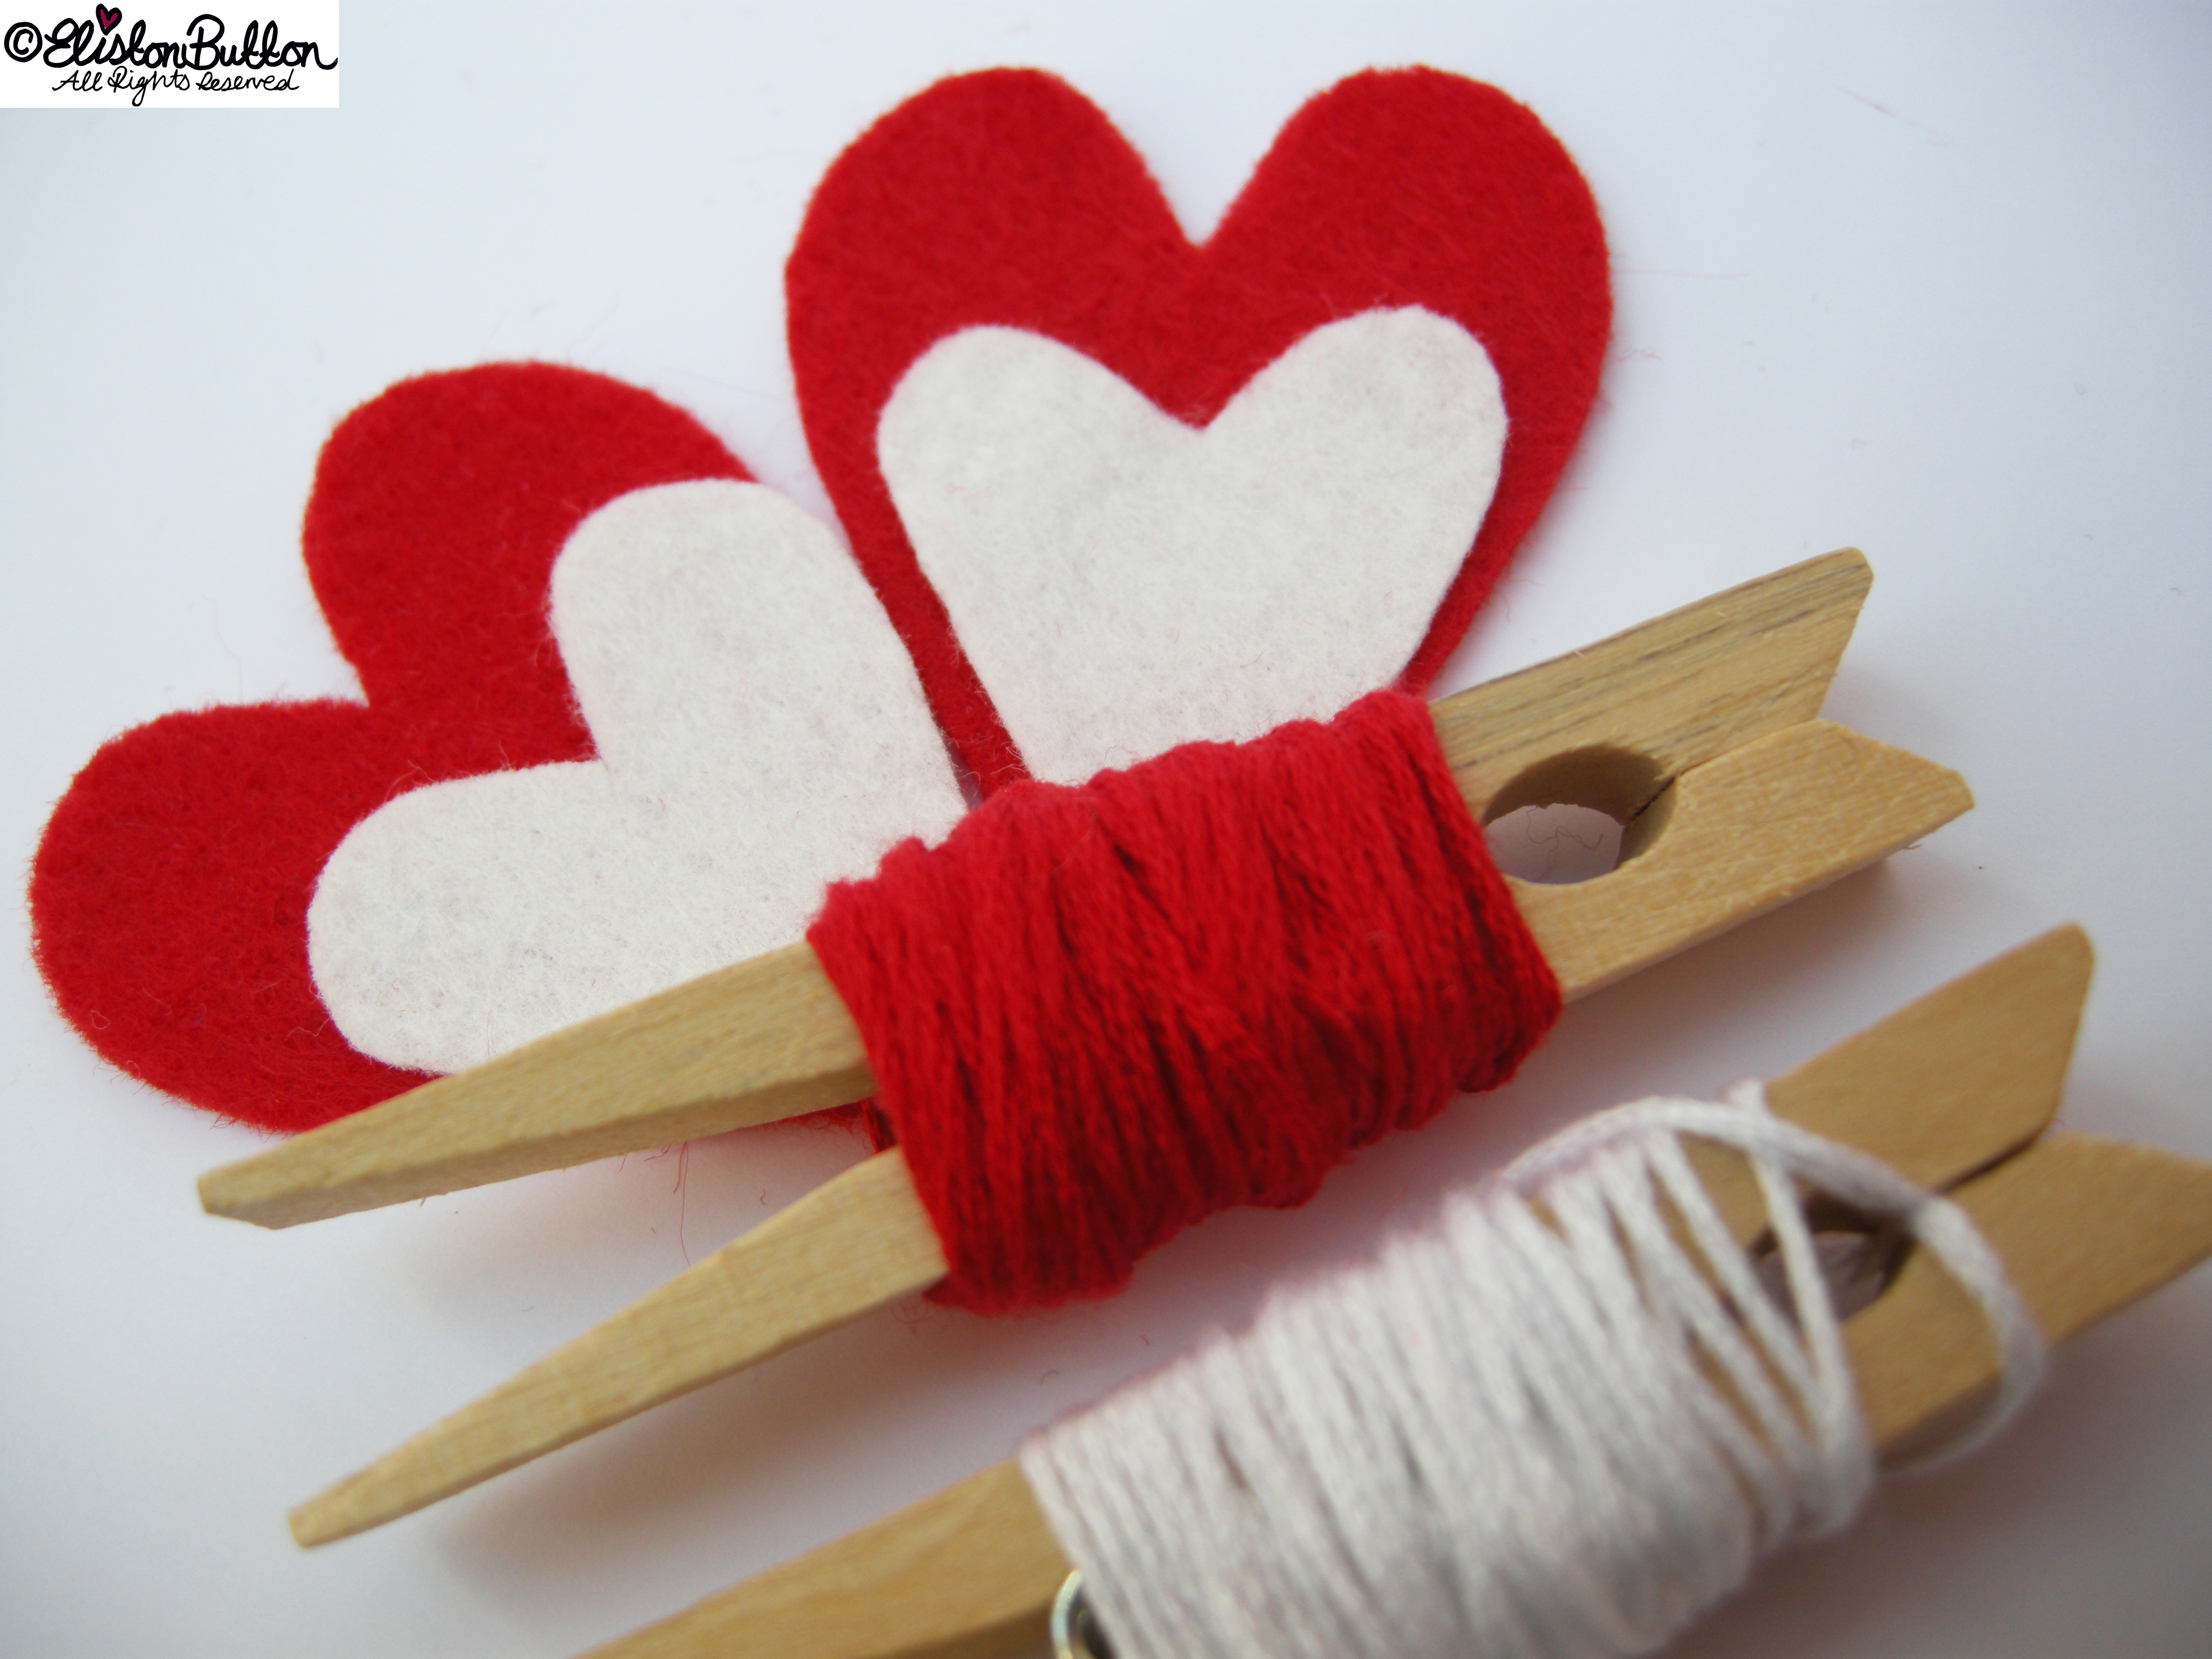 Red and White Felt and Embroidery Thread Colour Palette - 27 Before 27 - Hello Lover... at www.elistonbutton.com - Eliston Button - That Crafty Kid – Art, Design, Craft & Adventure.